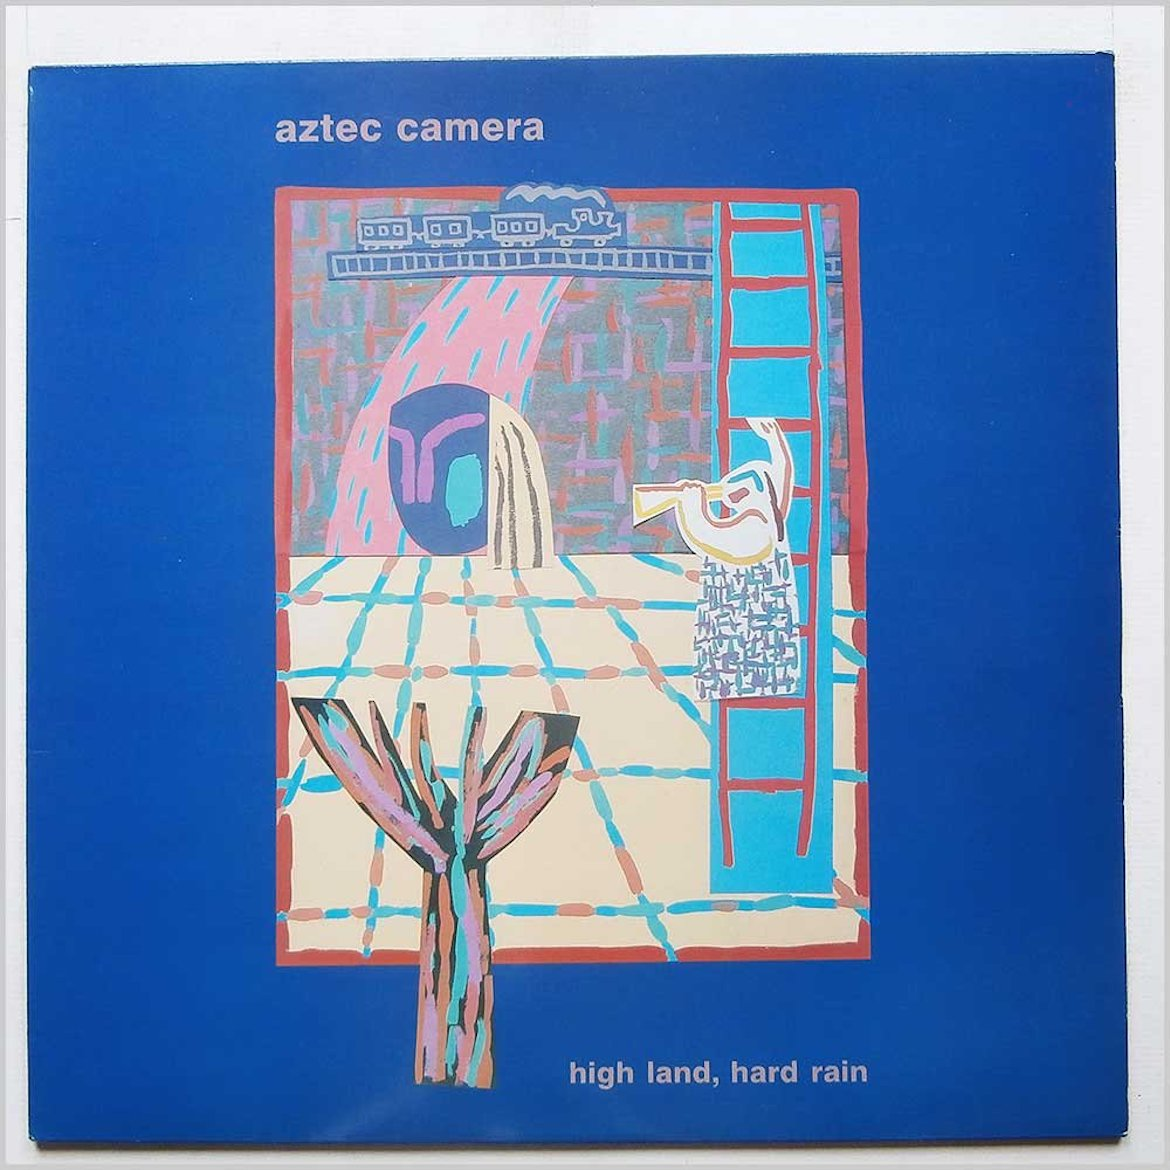 Aztec Camera on Selective Memory